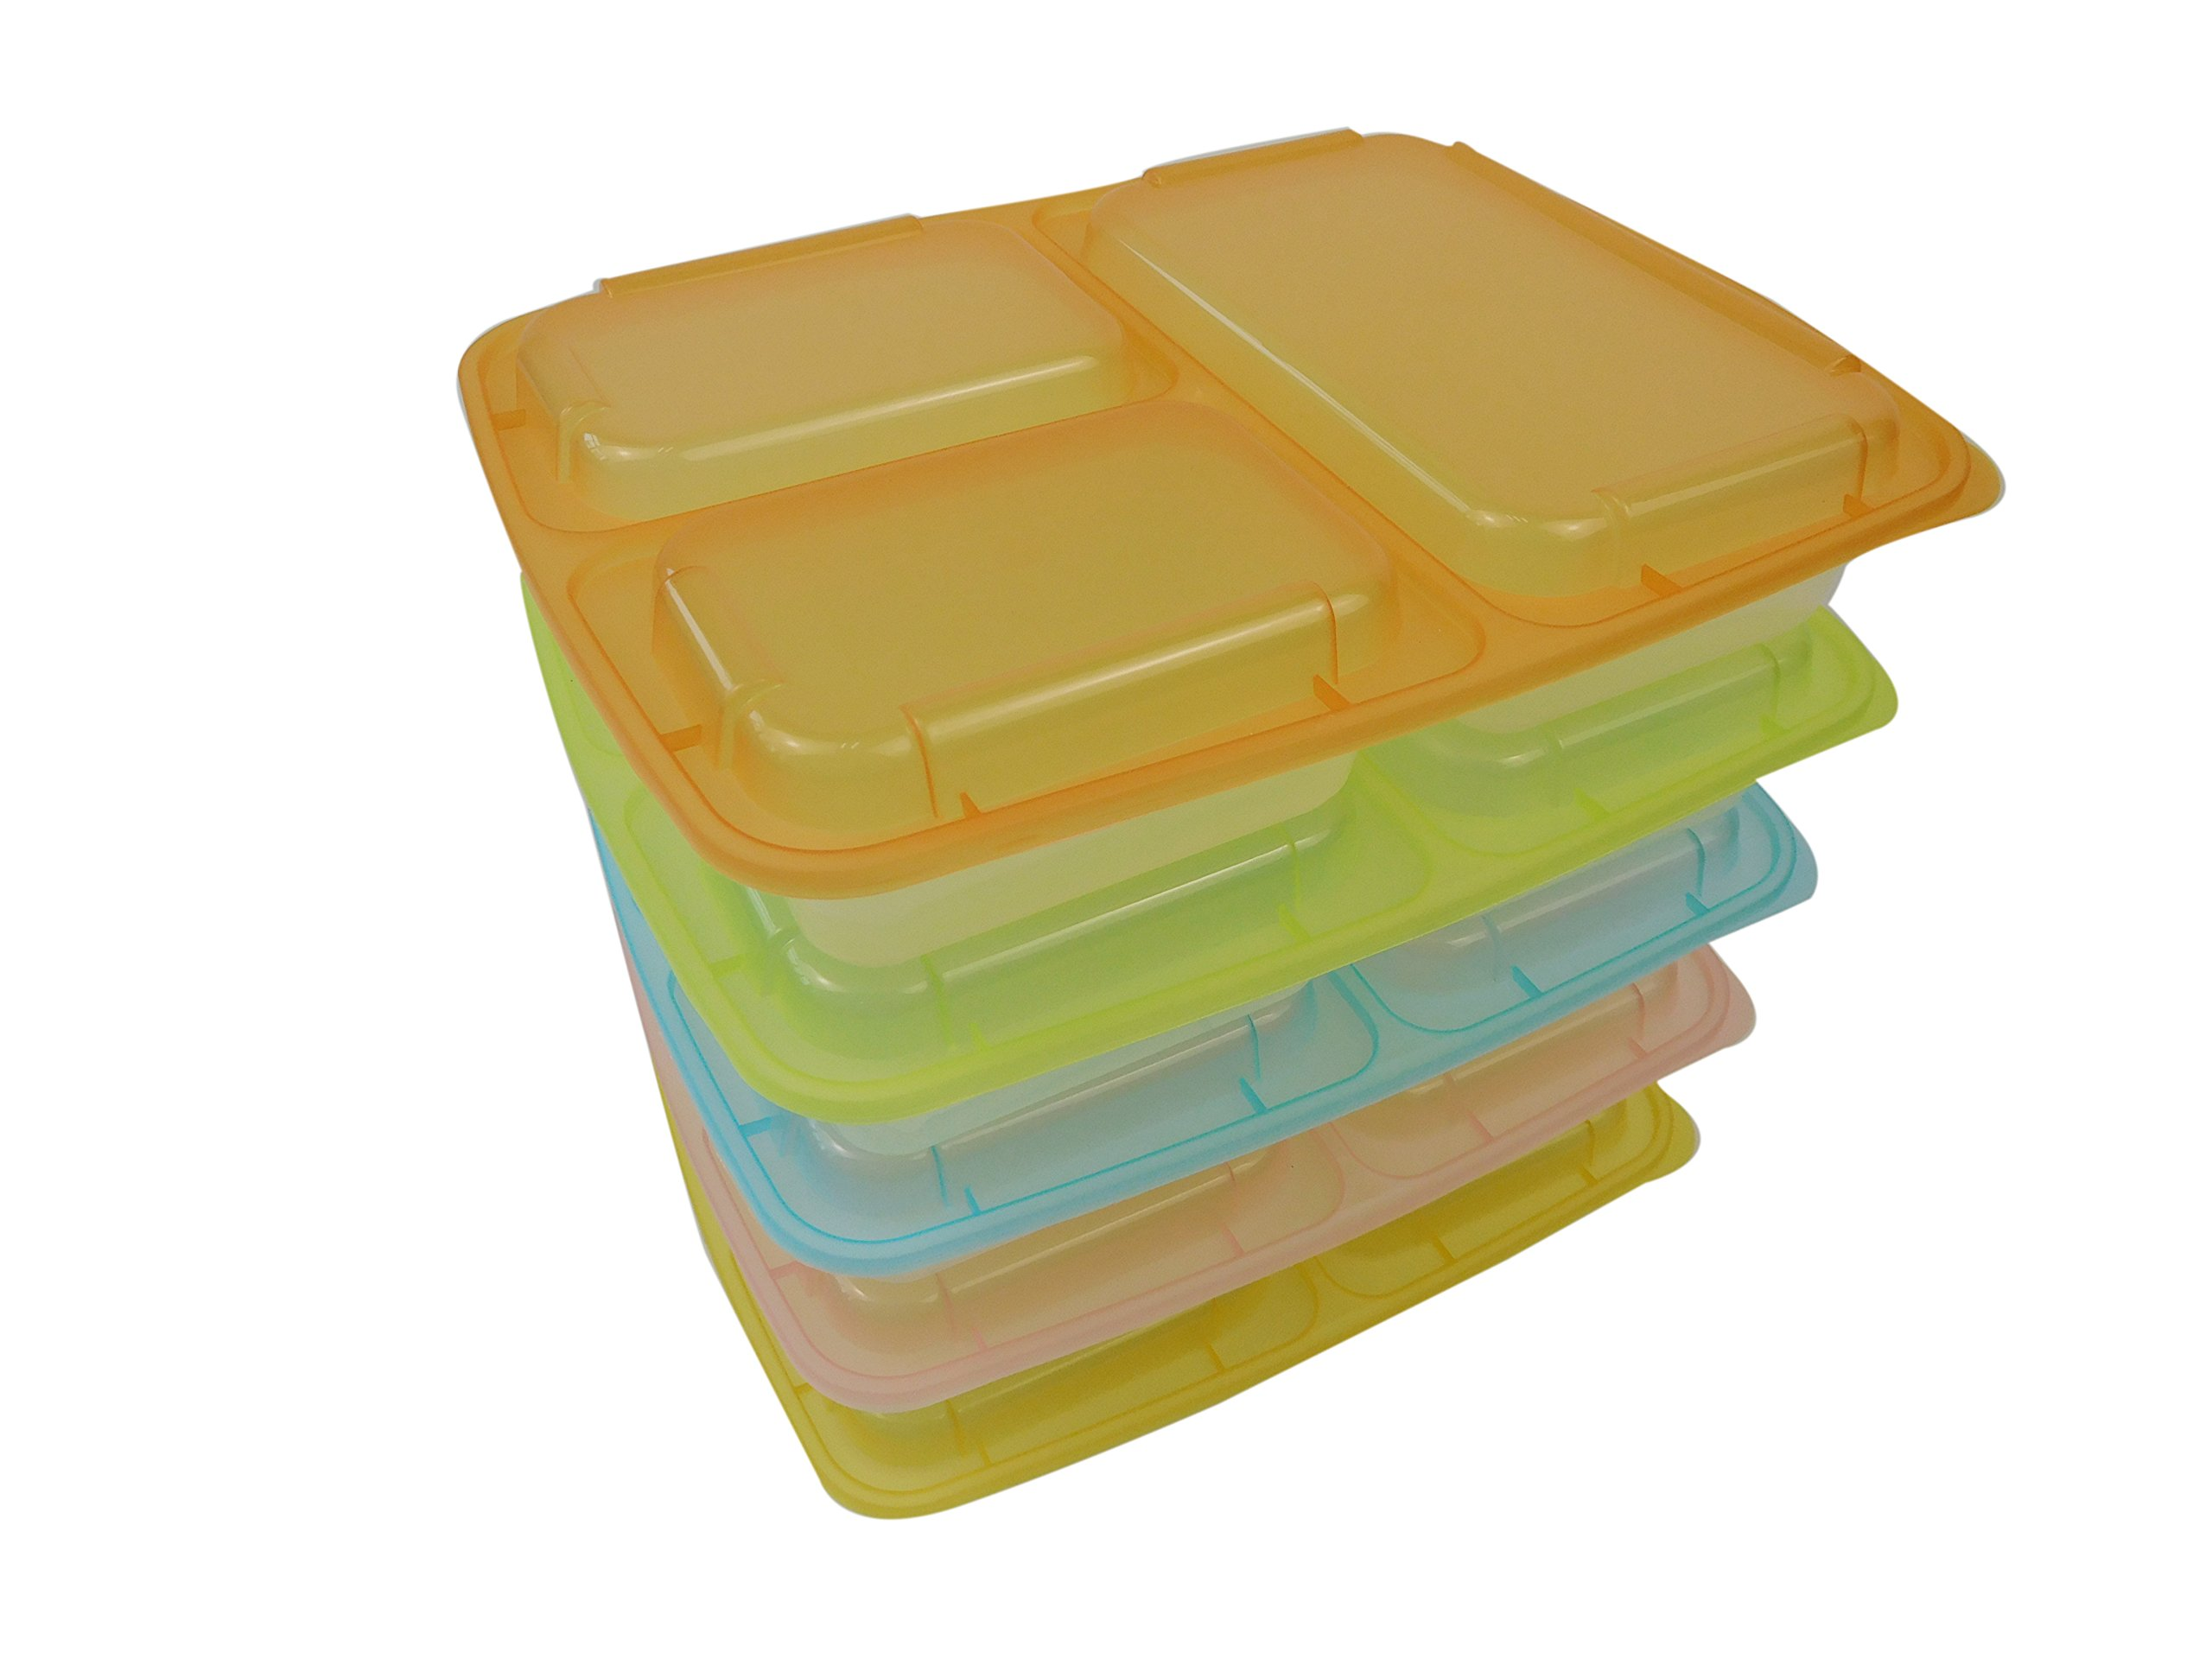 Table To Go 240-Pack Bento Lunch Boxes with Lids (3 Compartment/ 36 oz) (Multicolor Lids) by Table To Go